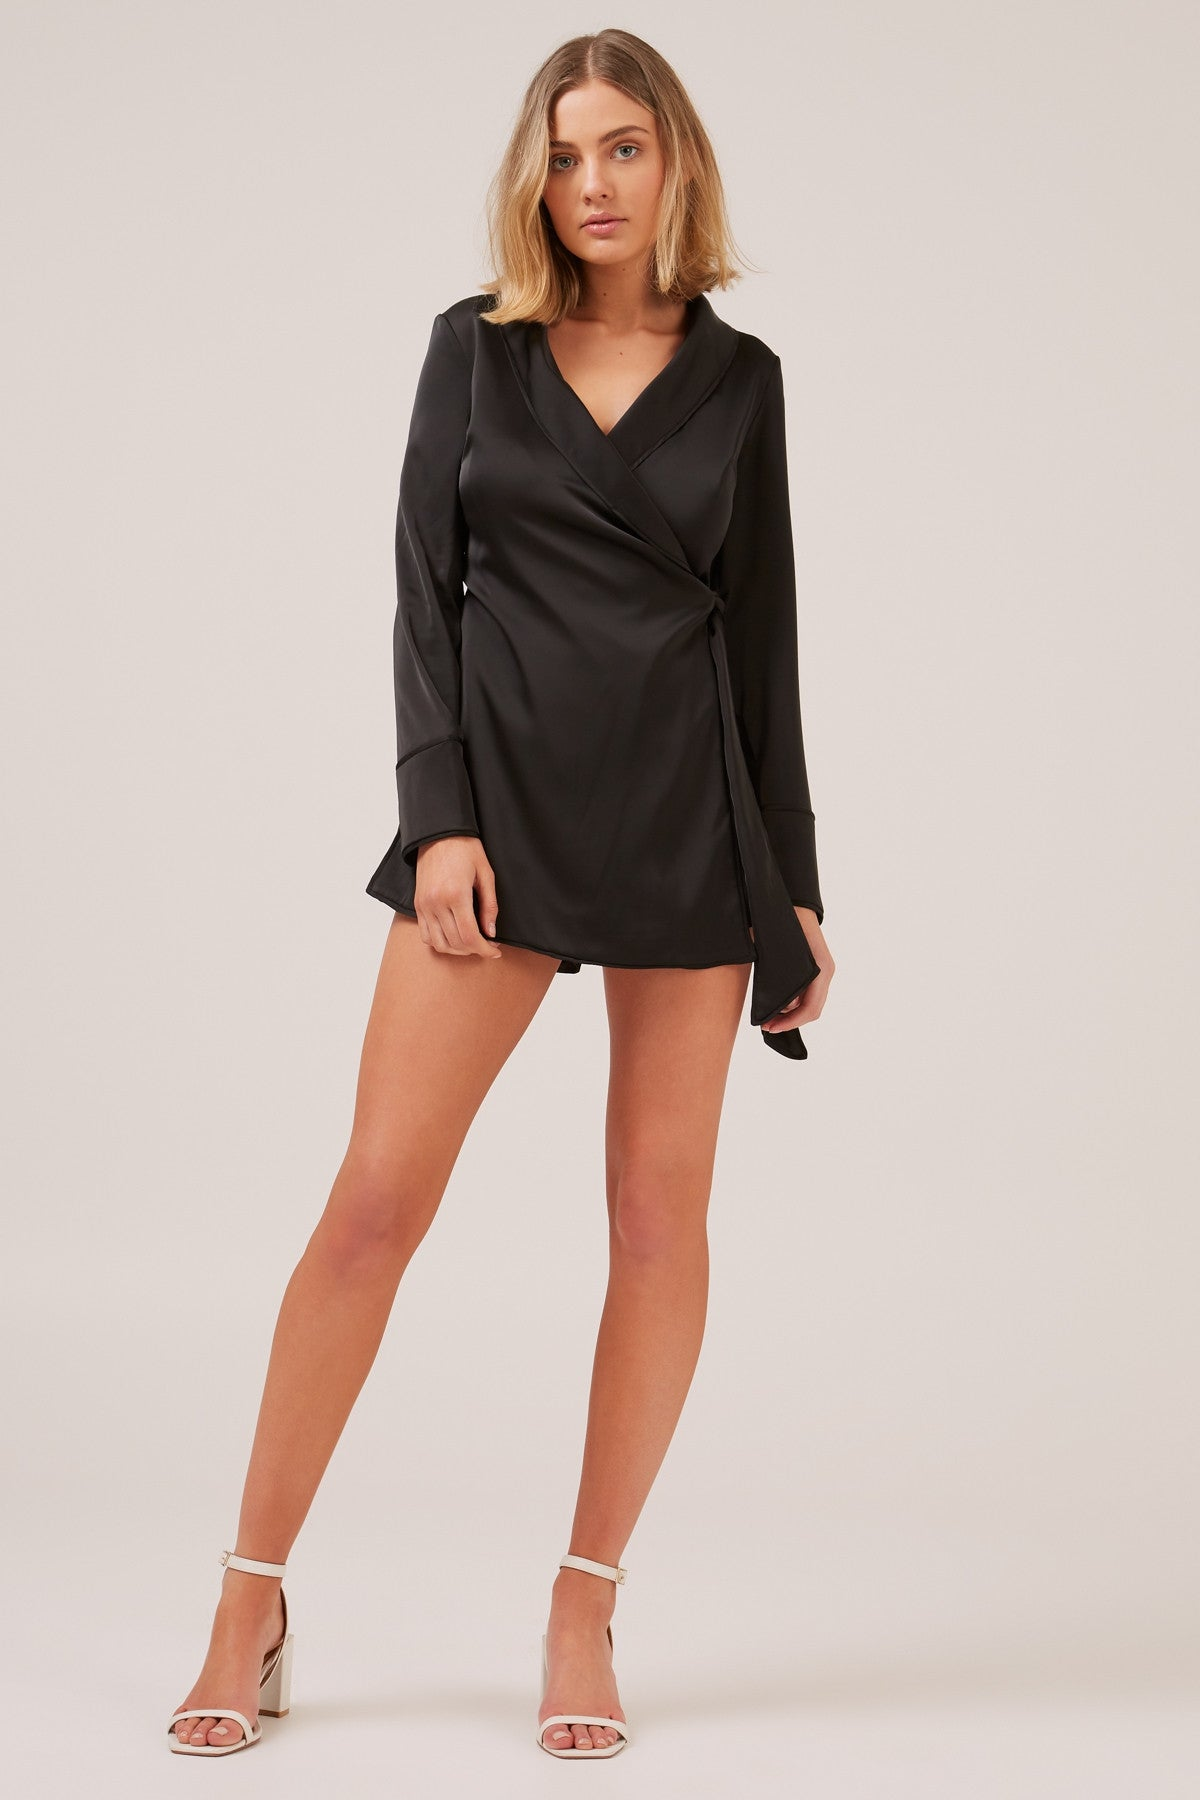 fcd1e6a8ceb SIMPLE THINGS silky wrap style playsuit - black – Uptown BIBI